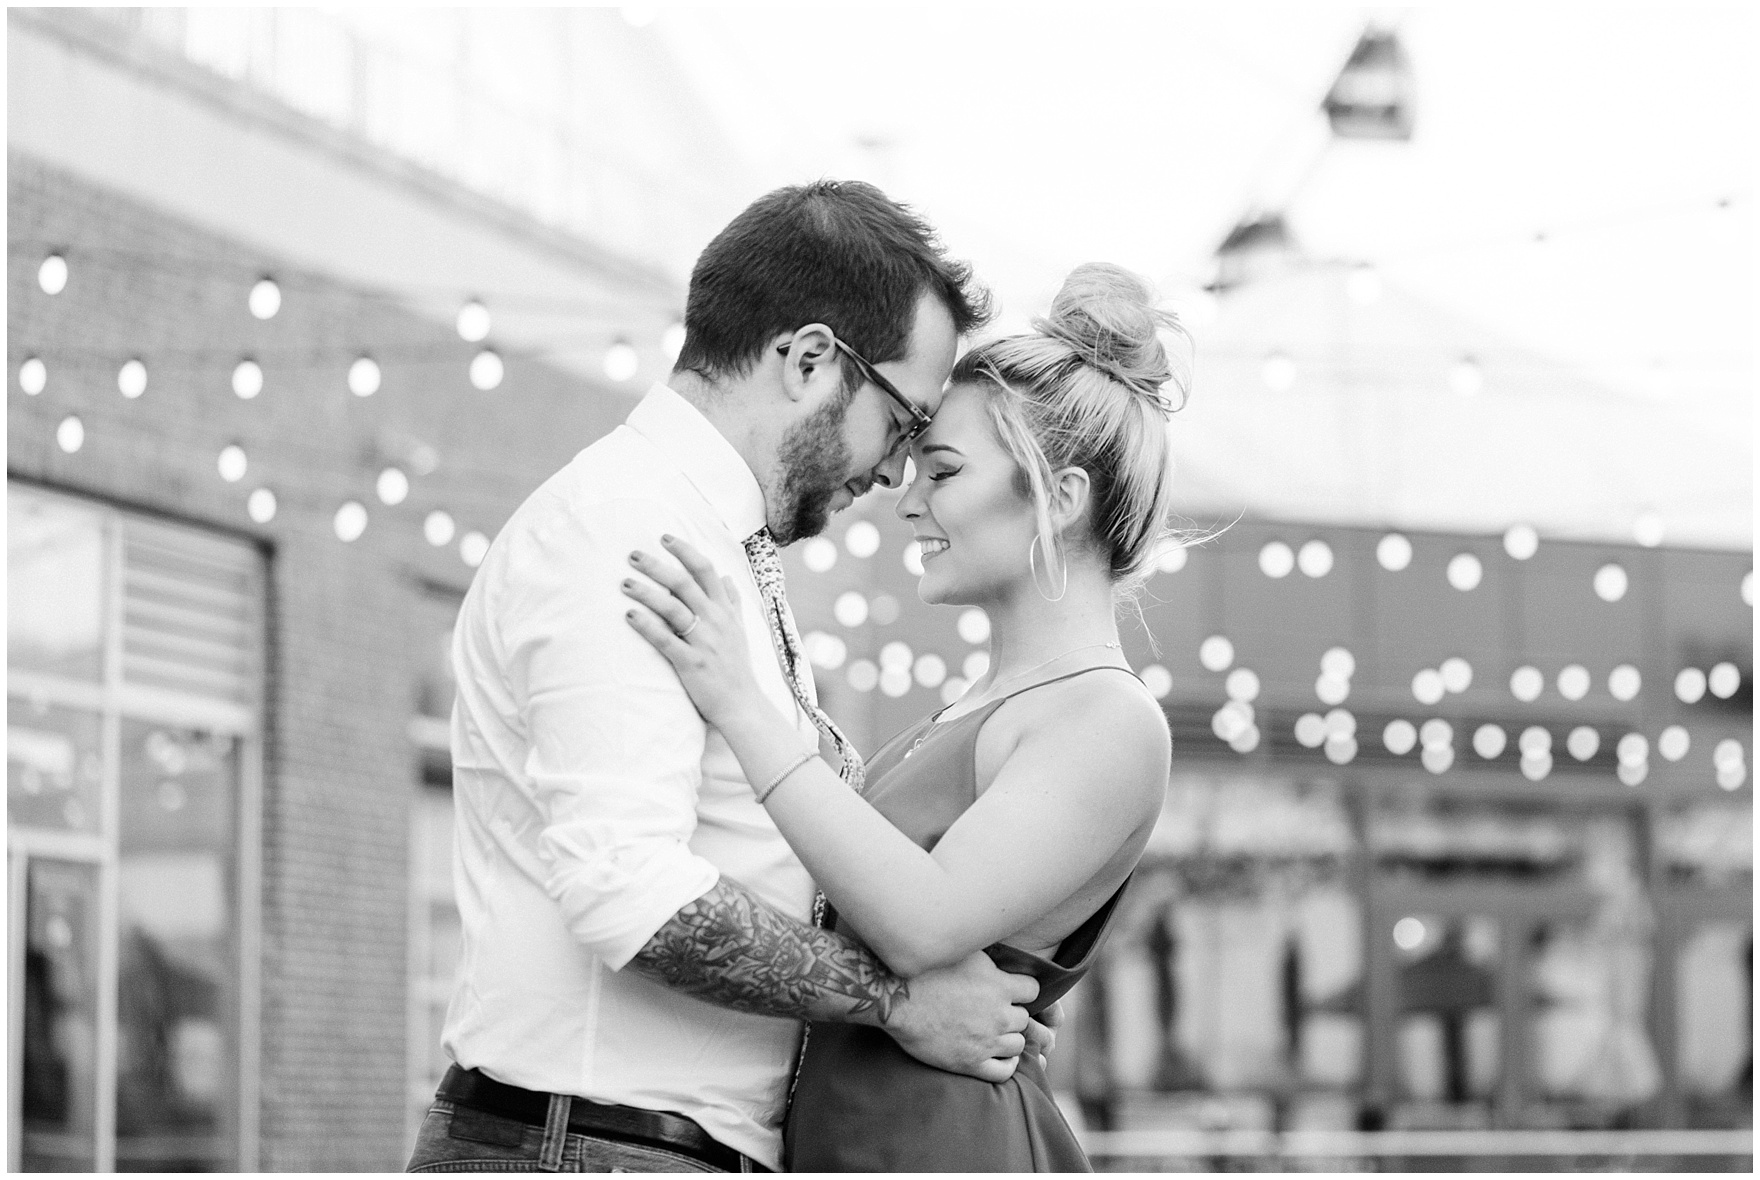 A couple embraces during a Chicago Navy Pier engagement photography session.